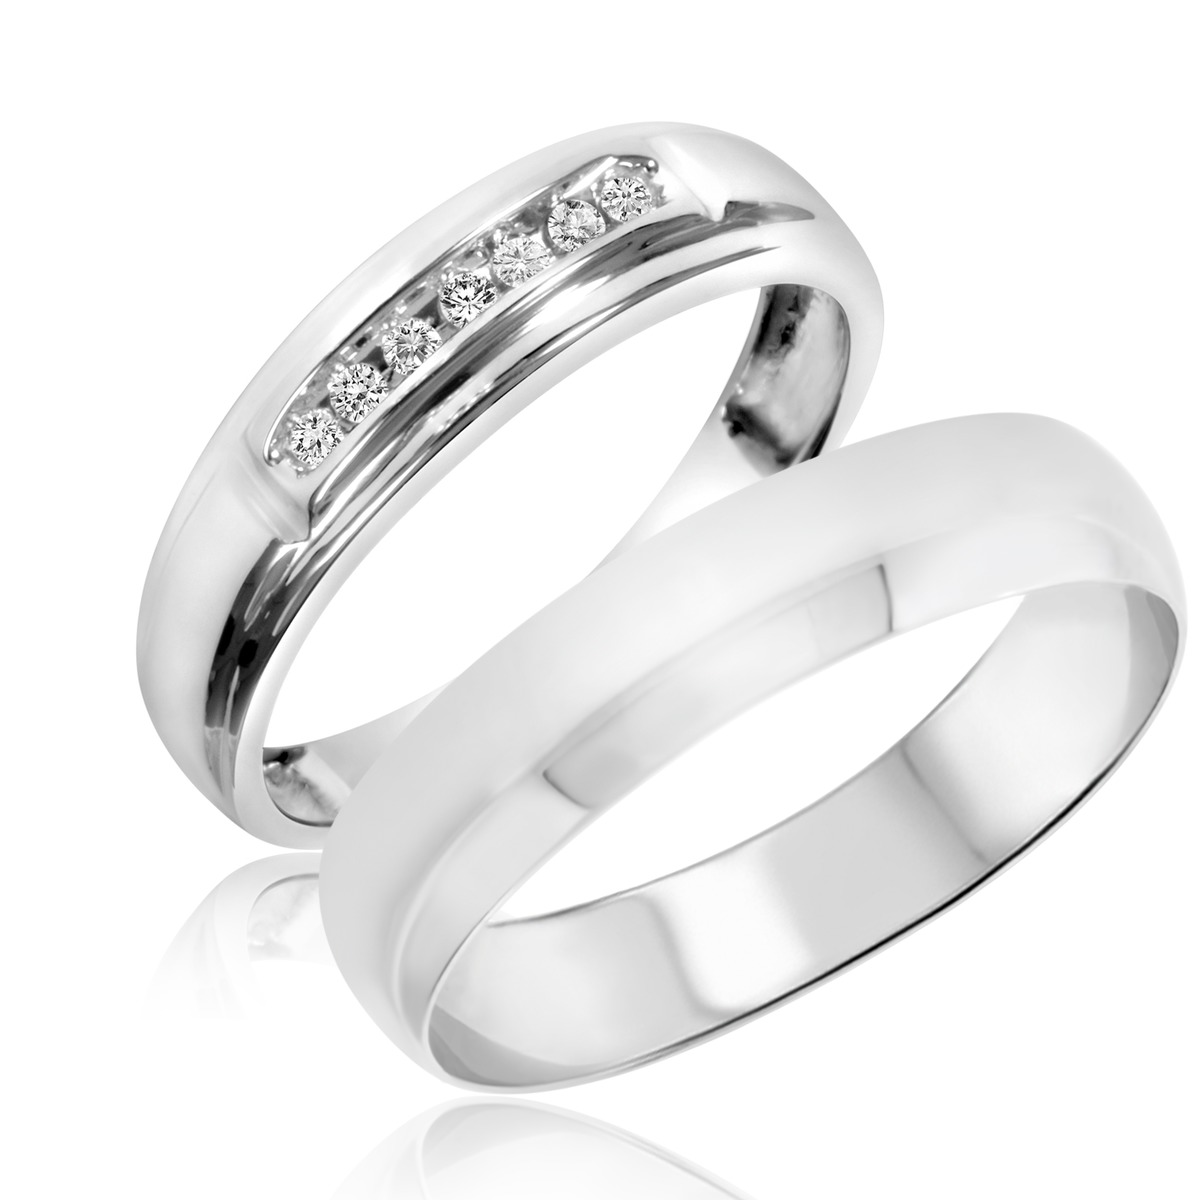 1/20 Carat T.W. Round Cut Diamond His and Hers Wedding Band Set 10K White Gold